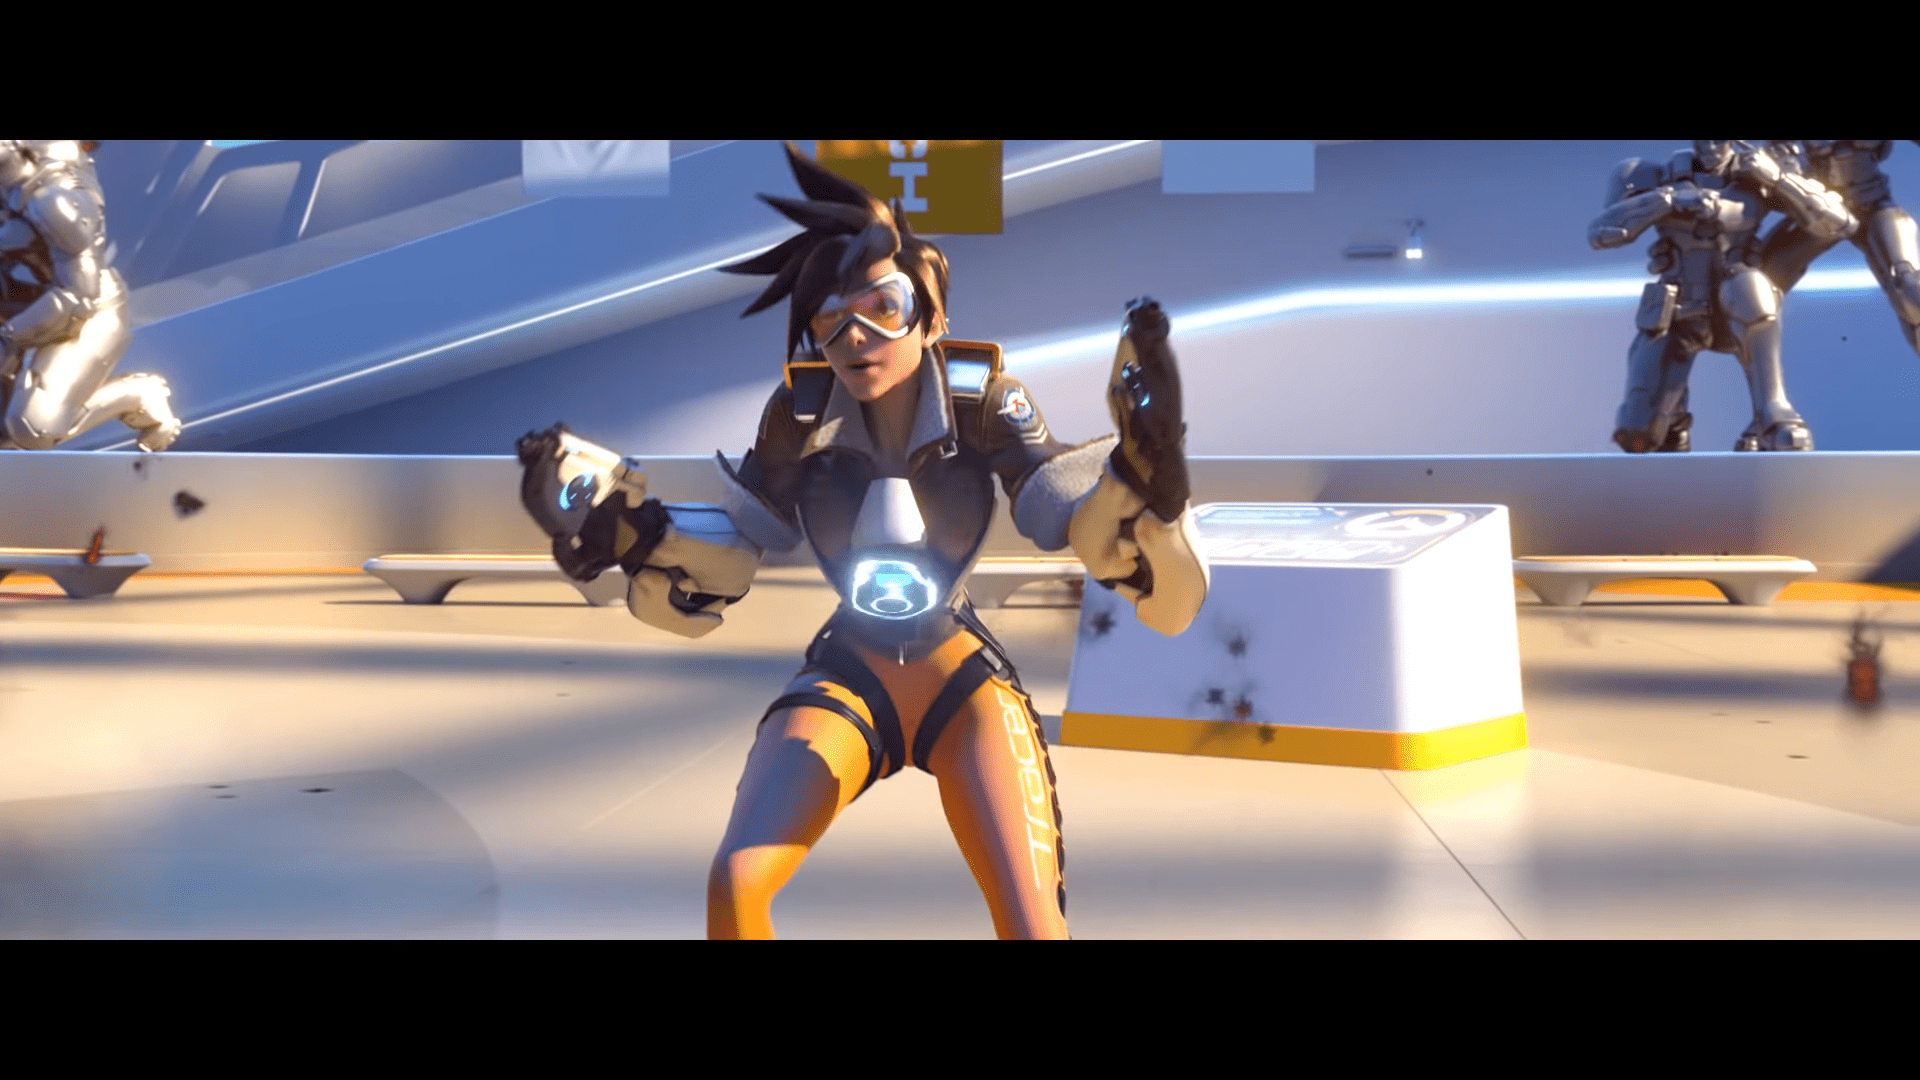 Blizzard Reveals The Experimental Card For Overwatch With A Focus On Surprisingly Meager Crowd Control